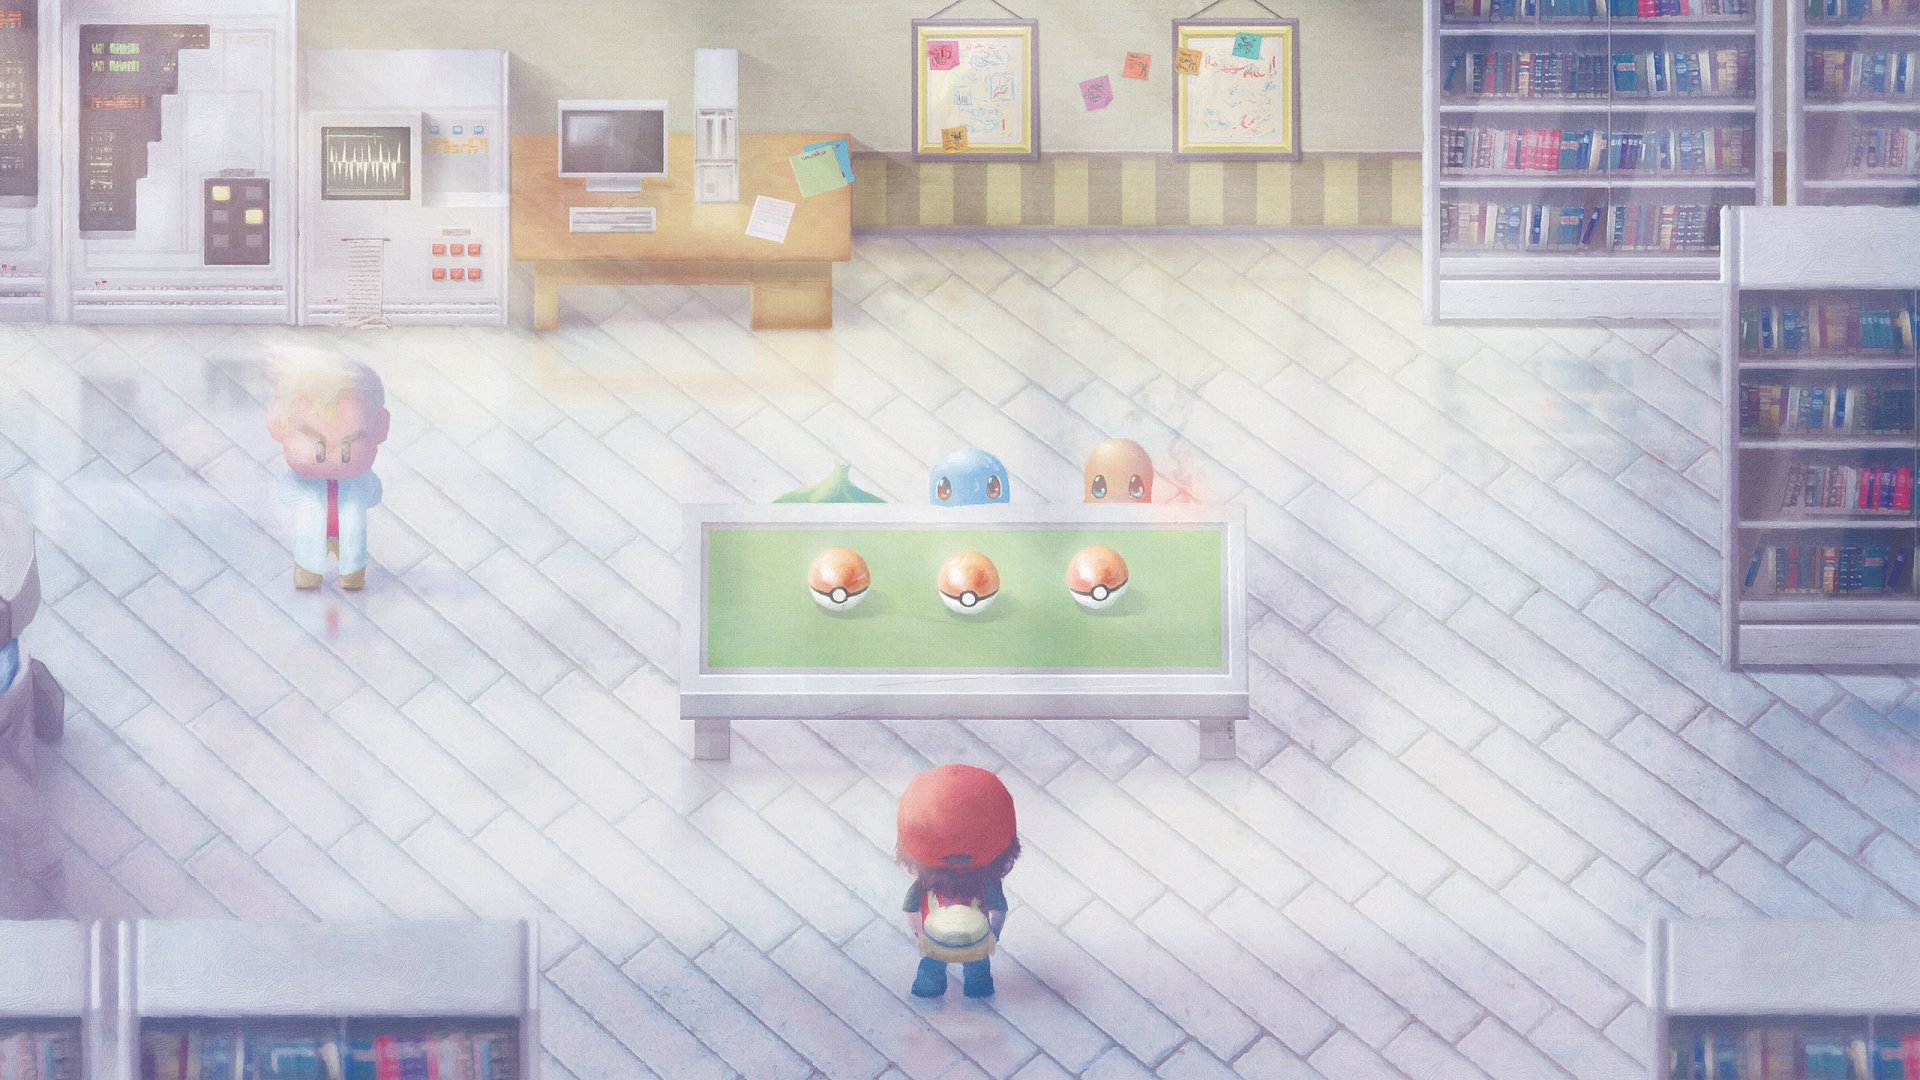 Video Game - Pokemon: Red and Blue  Pokémon Pokeball Wallpaper